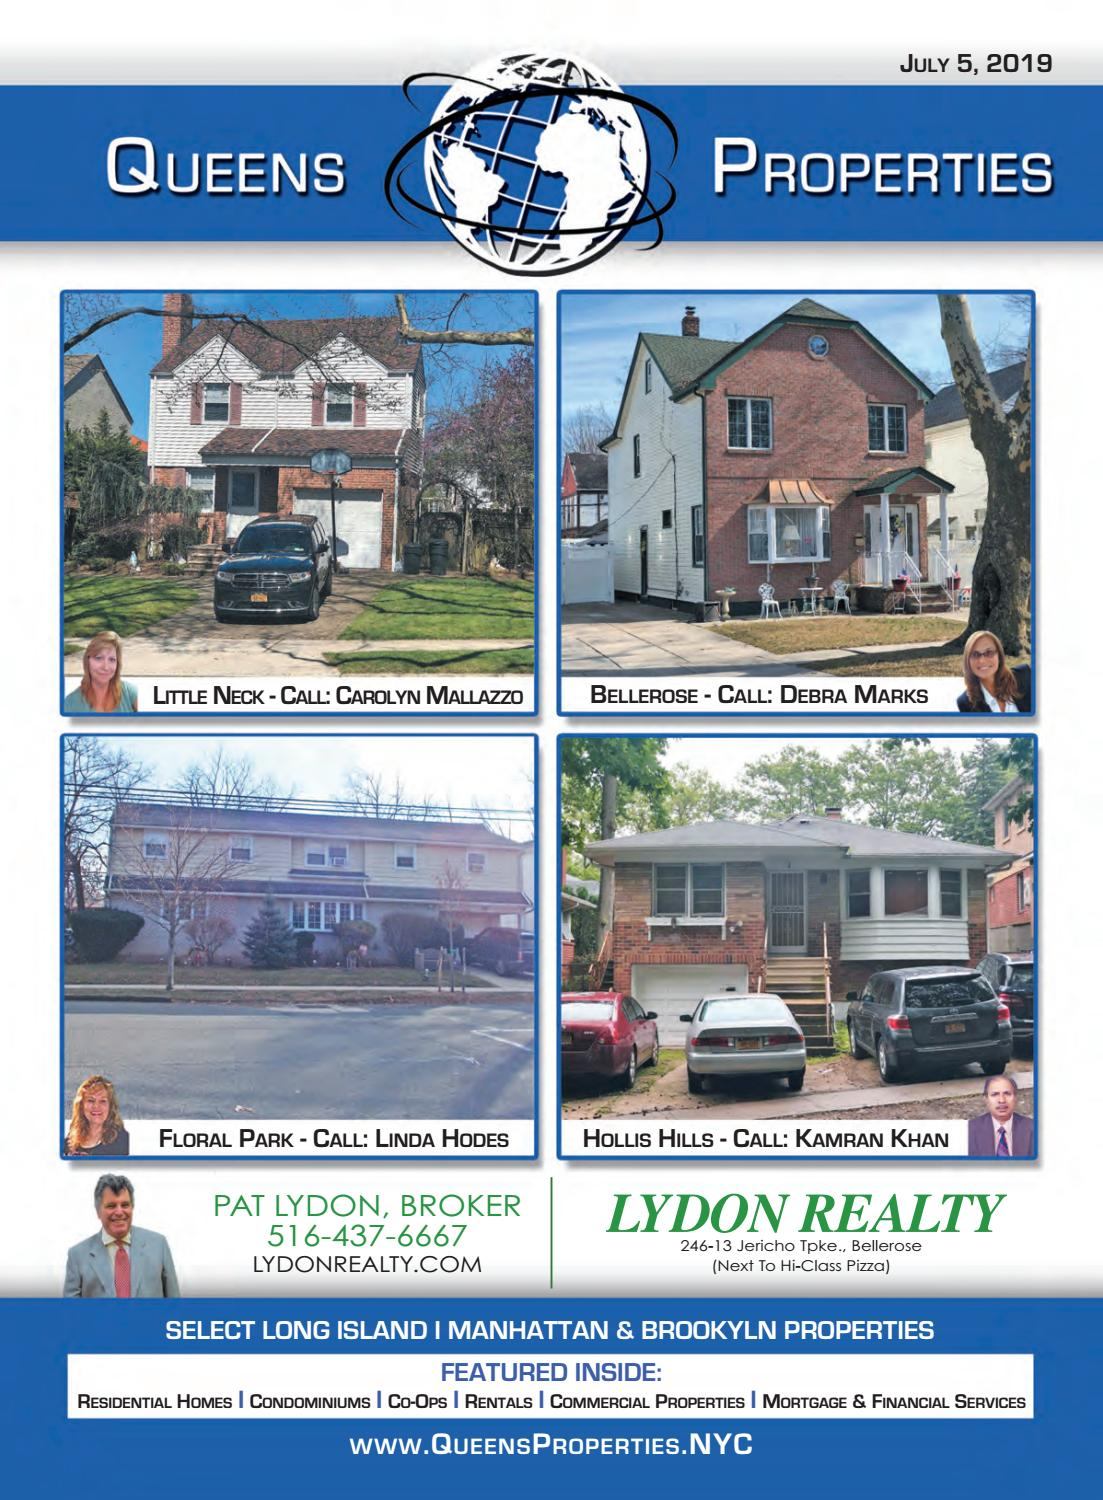 Queens Ny July 5 2019 Queens Properties Magazine By Queens Properties Magazine Issuu